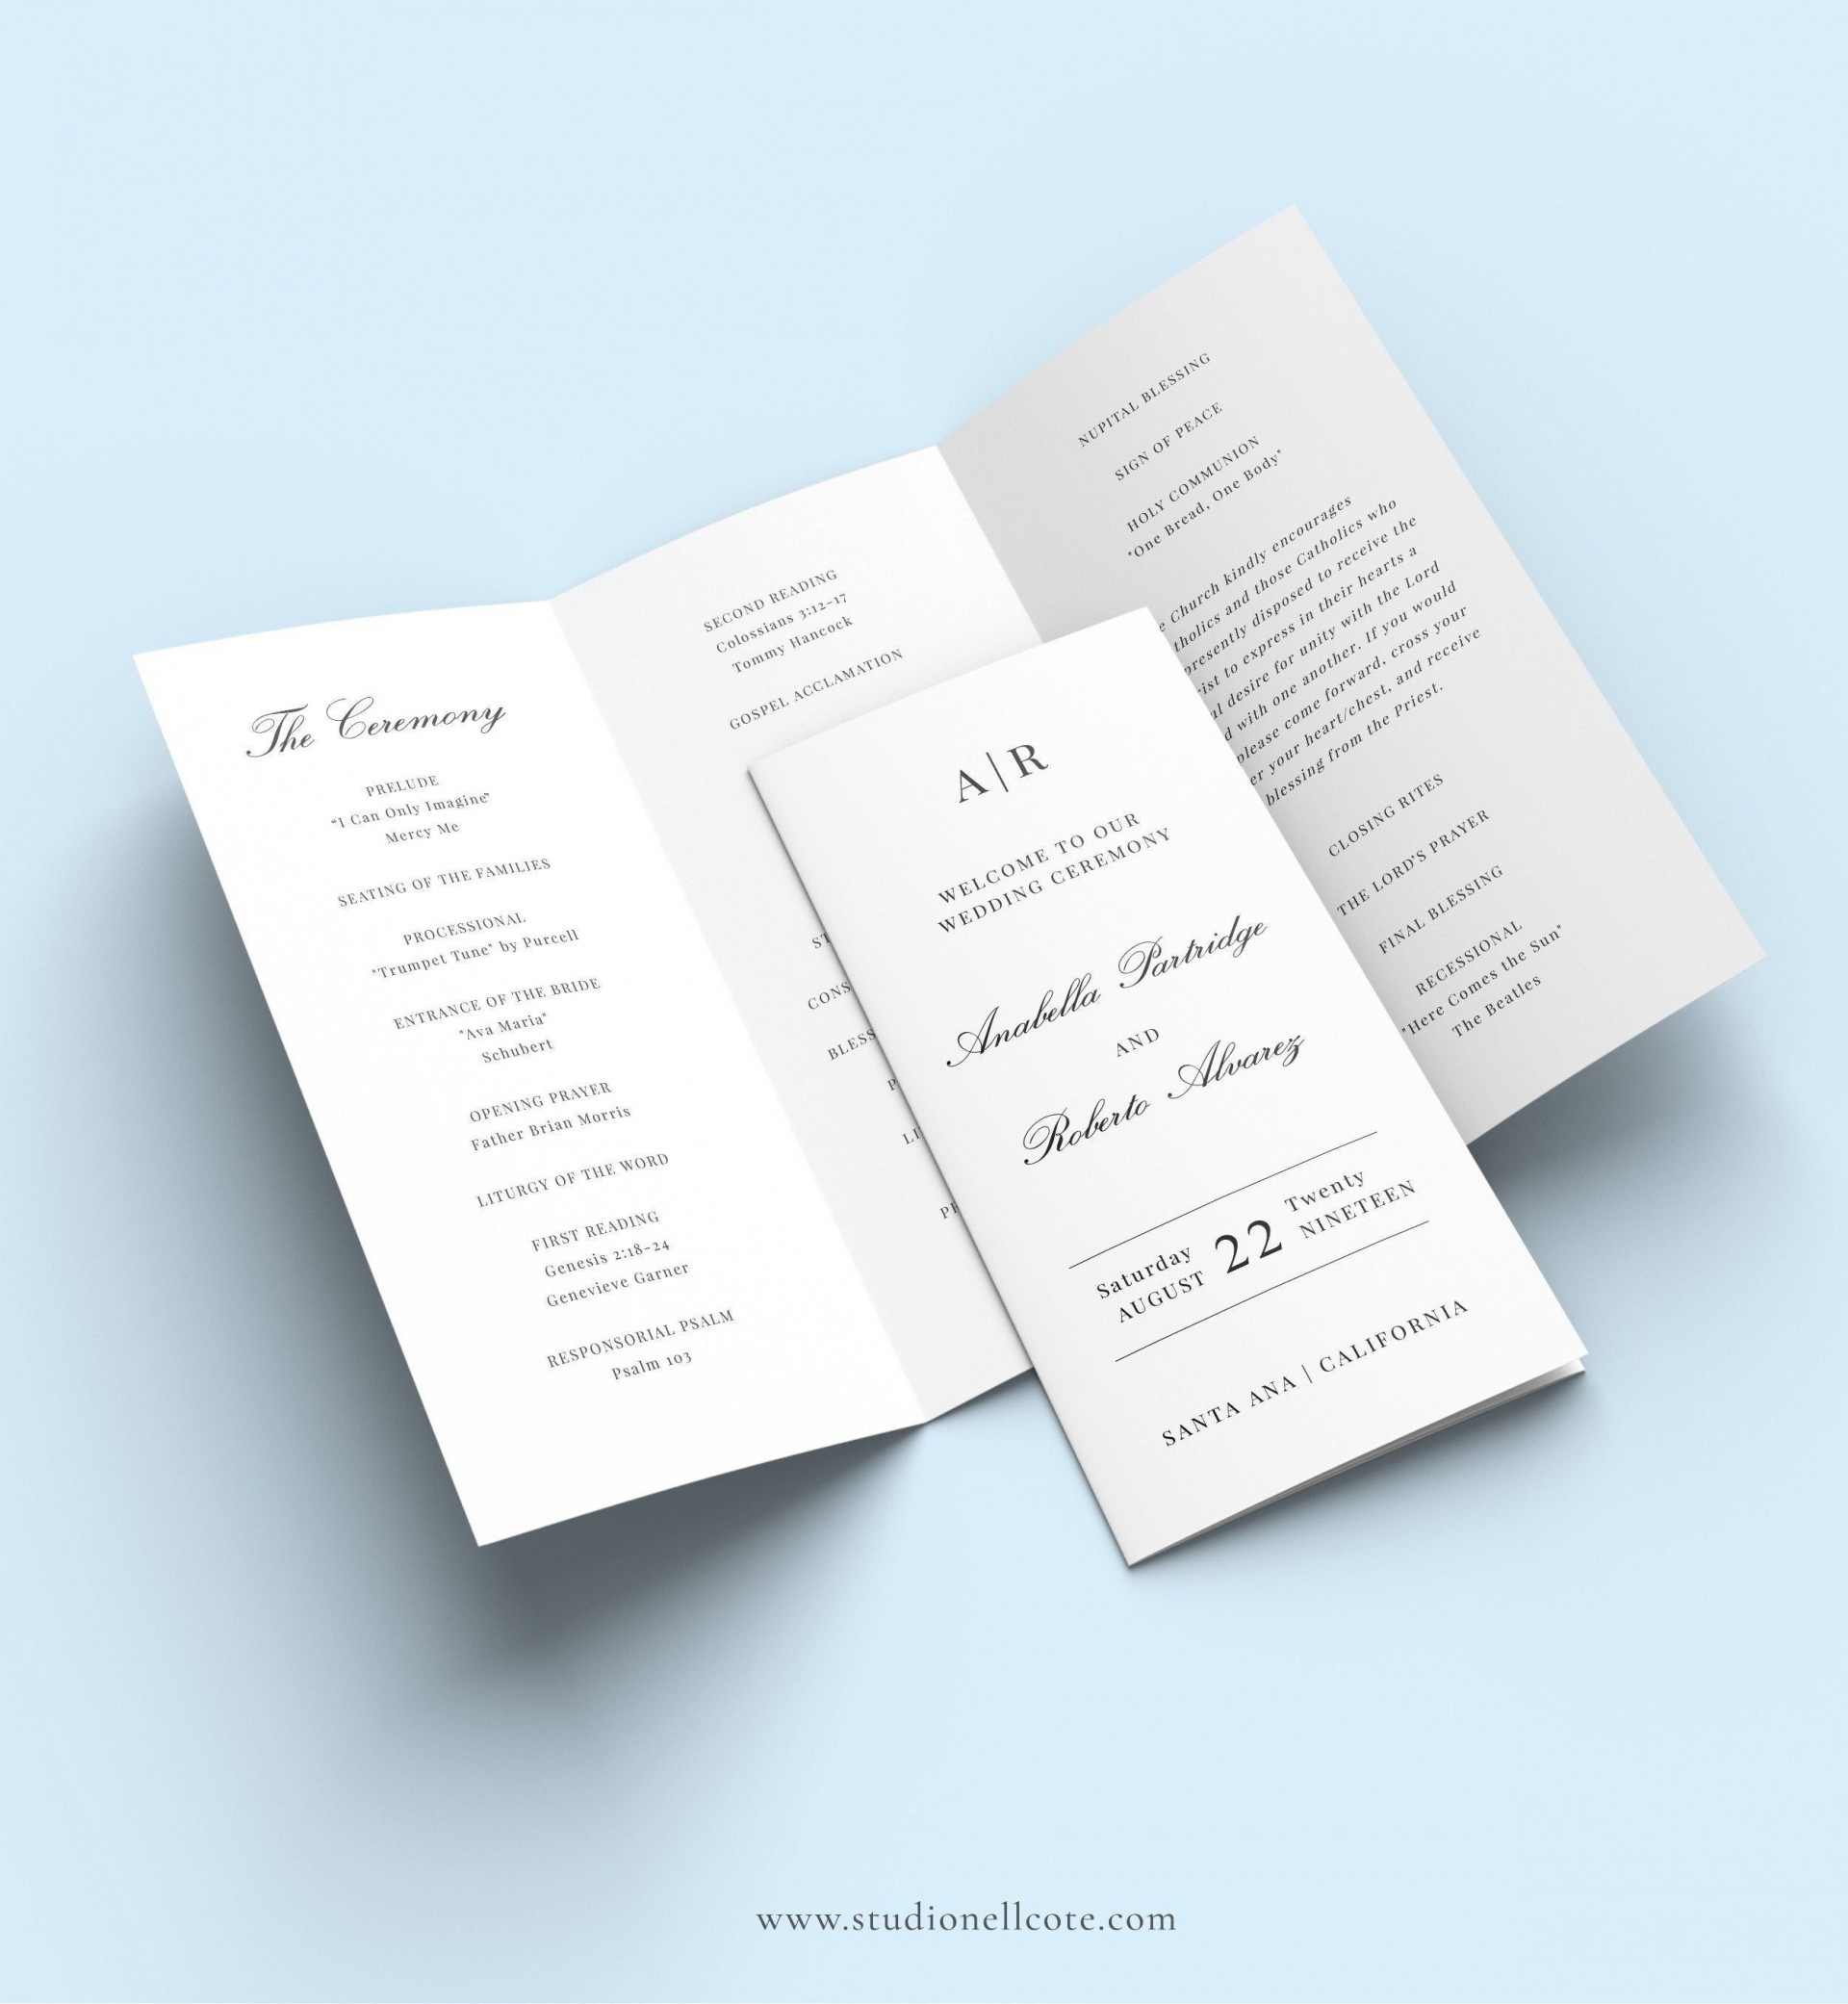 008 Awesome Trifold Wedding Program Template Design  Tri Fold Word Folded Example1920